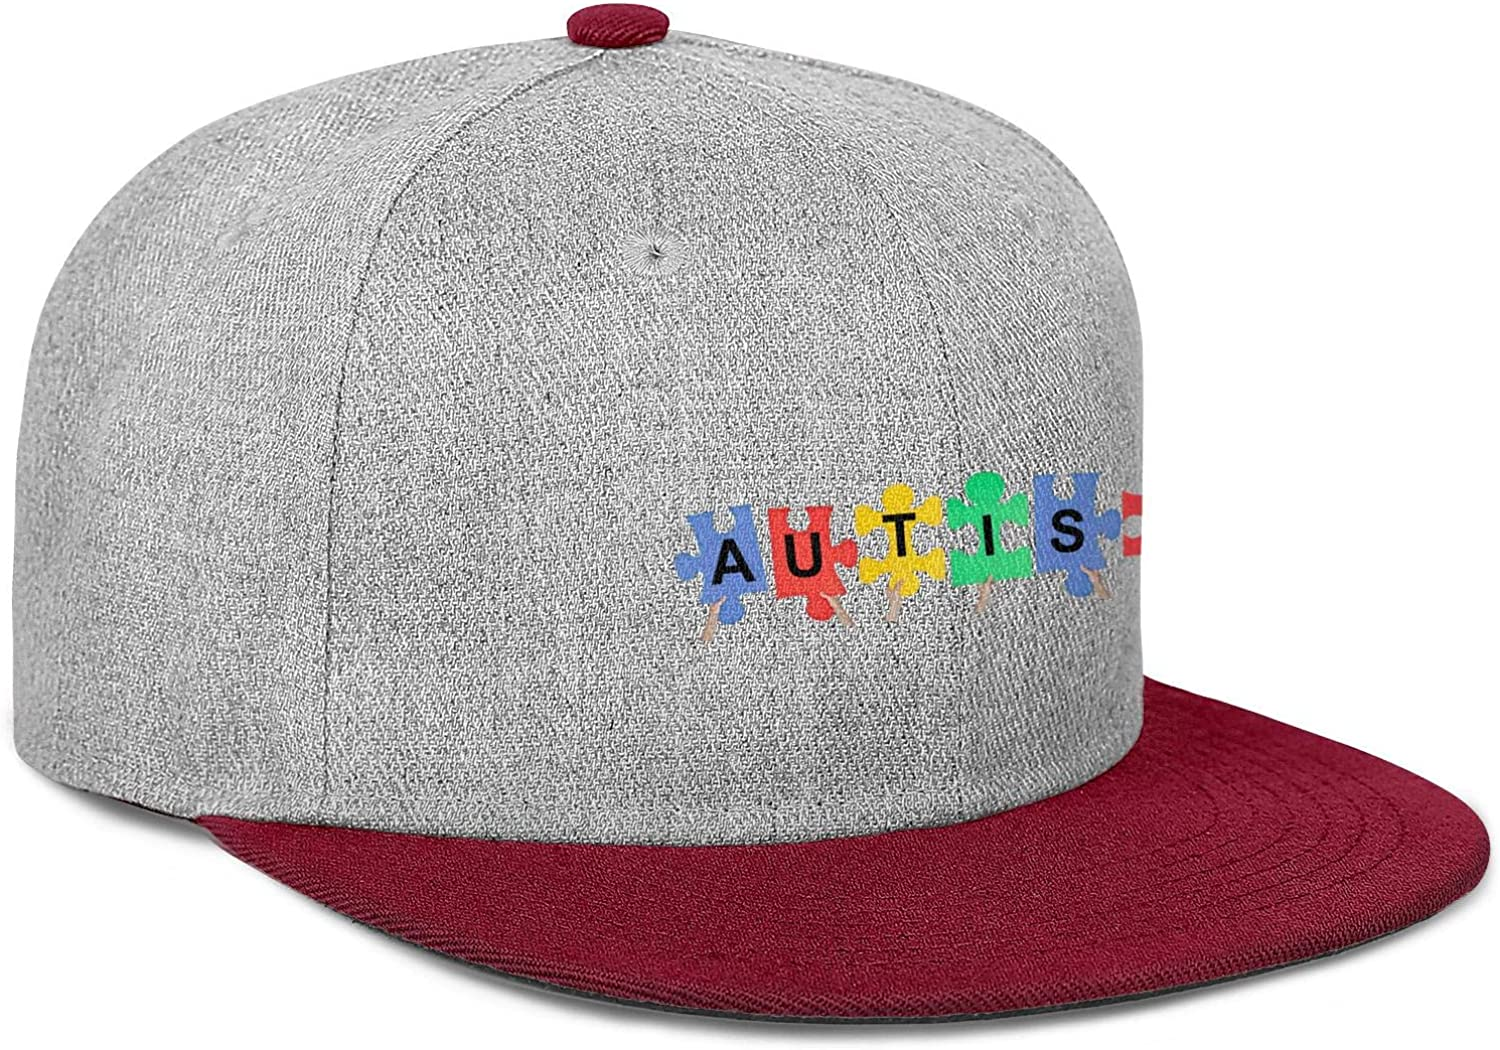 Autism Logo Color Hand Mens Women Wool Baseball Cap Adjustable Snapback Sun Hat